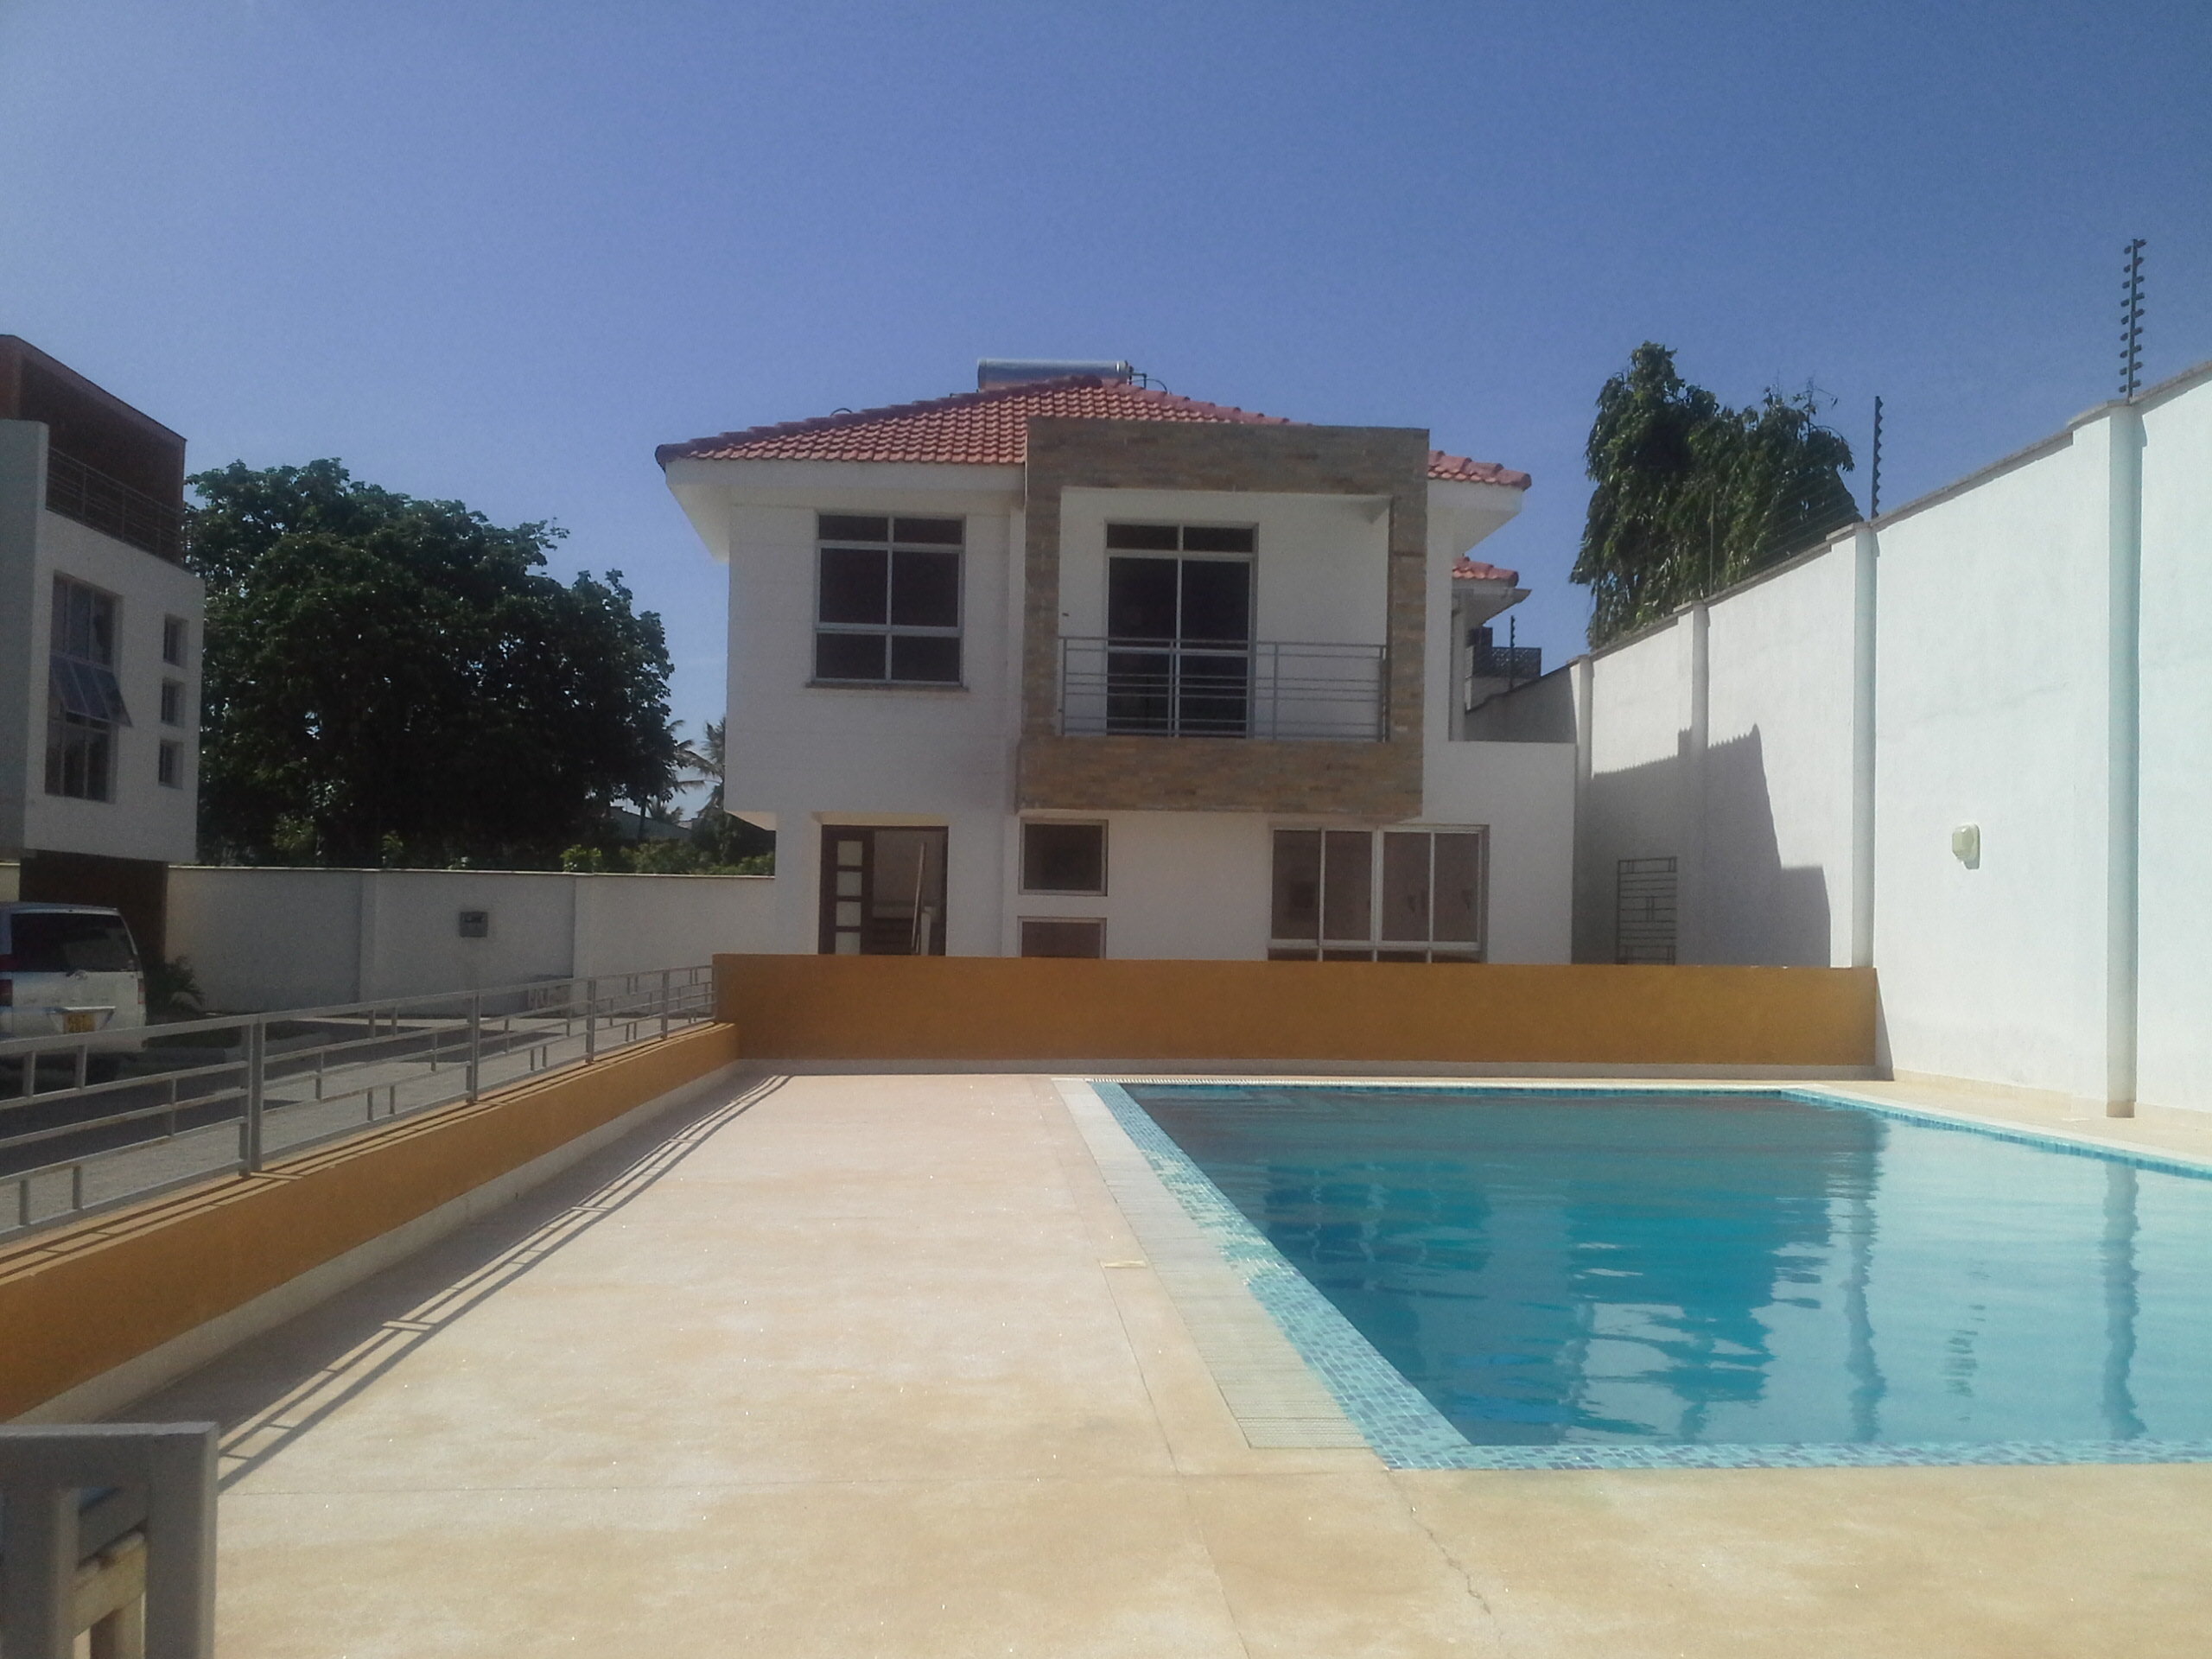 PEARL RESIDENCE - 3RD AVENUE (NEW NYALI), MOMBASA